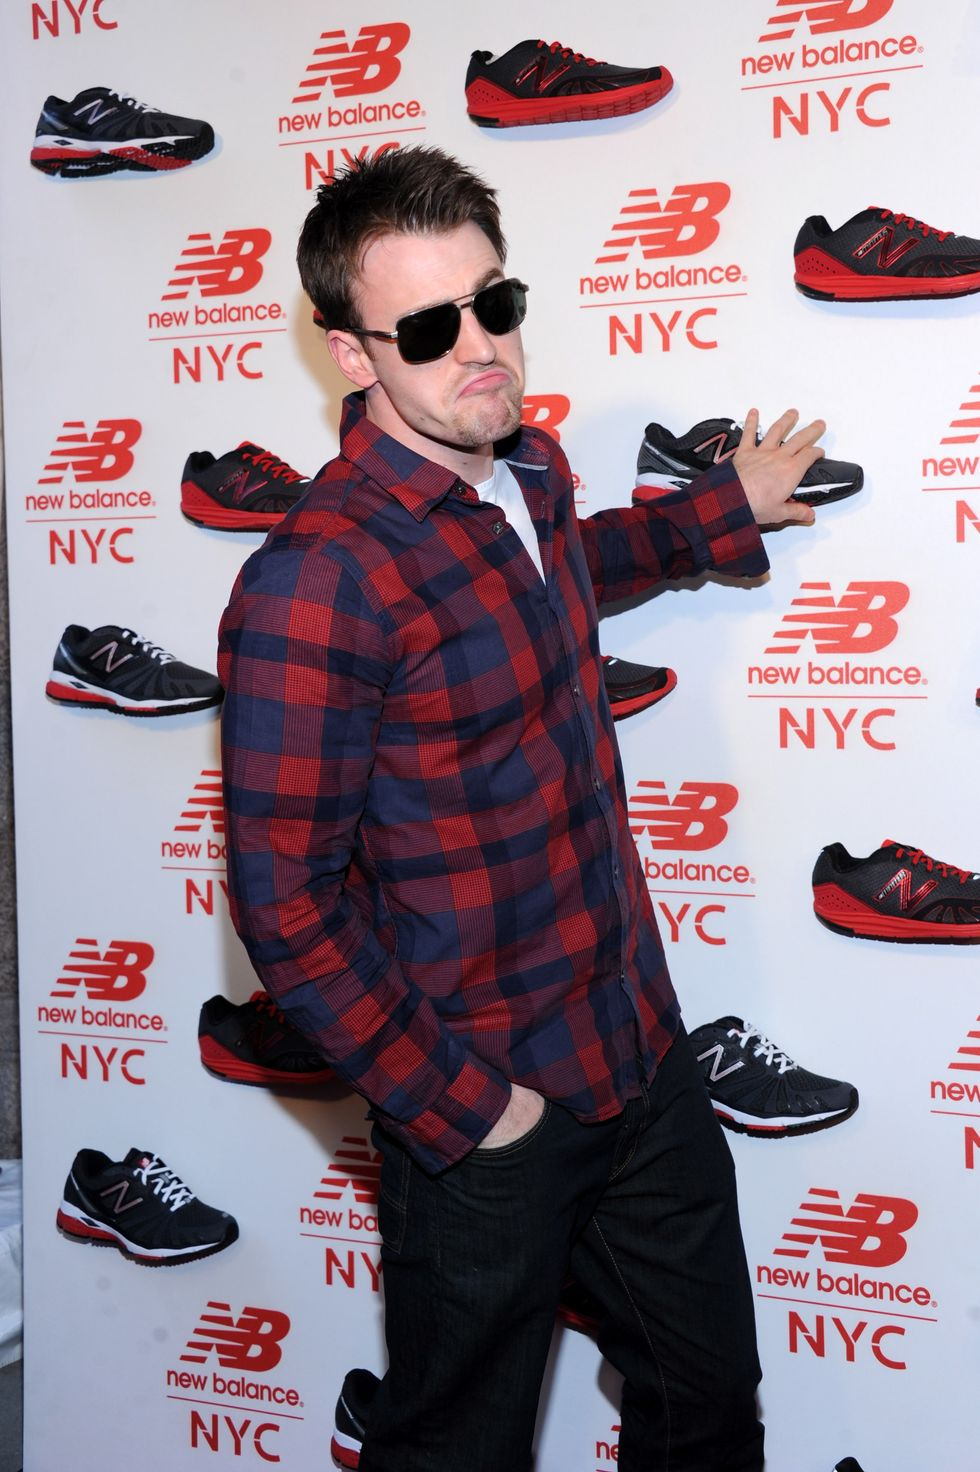 Sneaks Peak: Scenes From the New Balance Store Opening